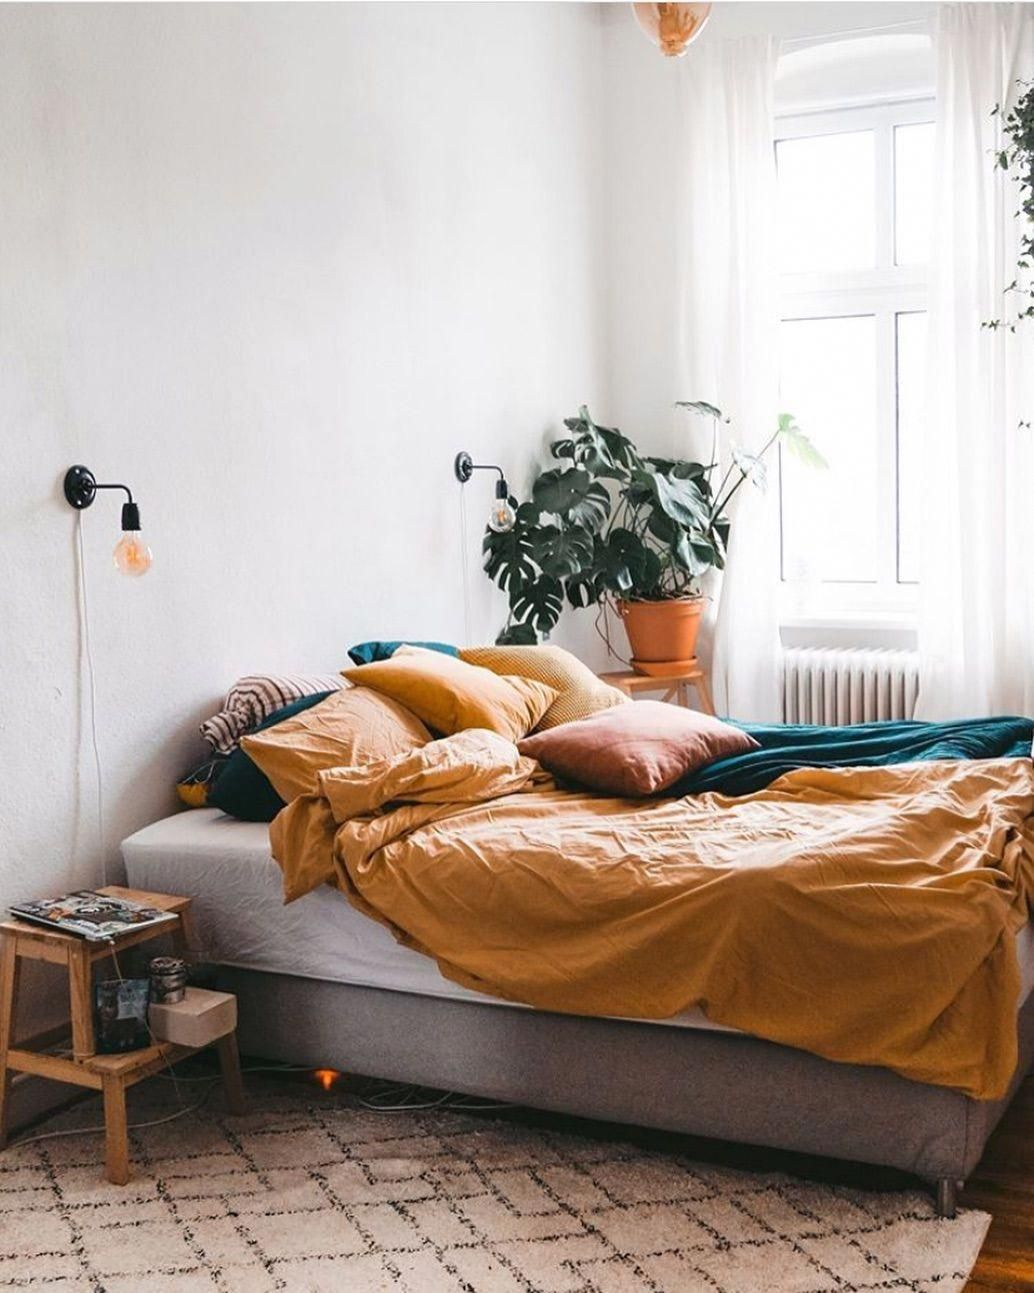 10 Home Decor Traits To Prove That You Have A Bohemian ... on Bohemian Bedroom Ideas On A Budget  id=42441